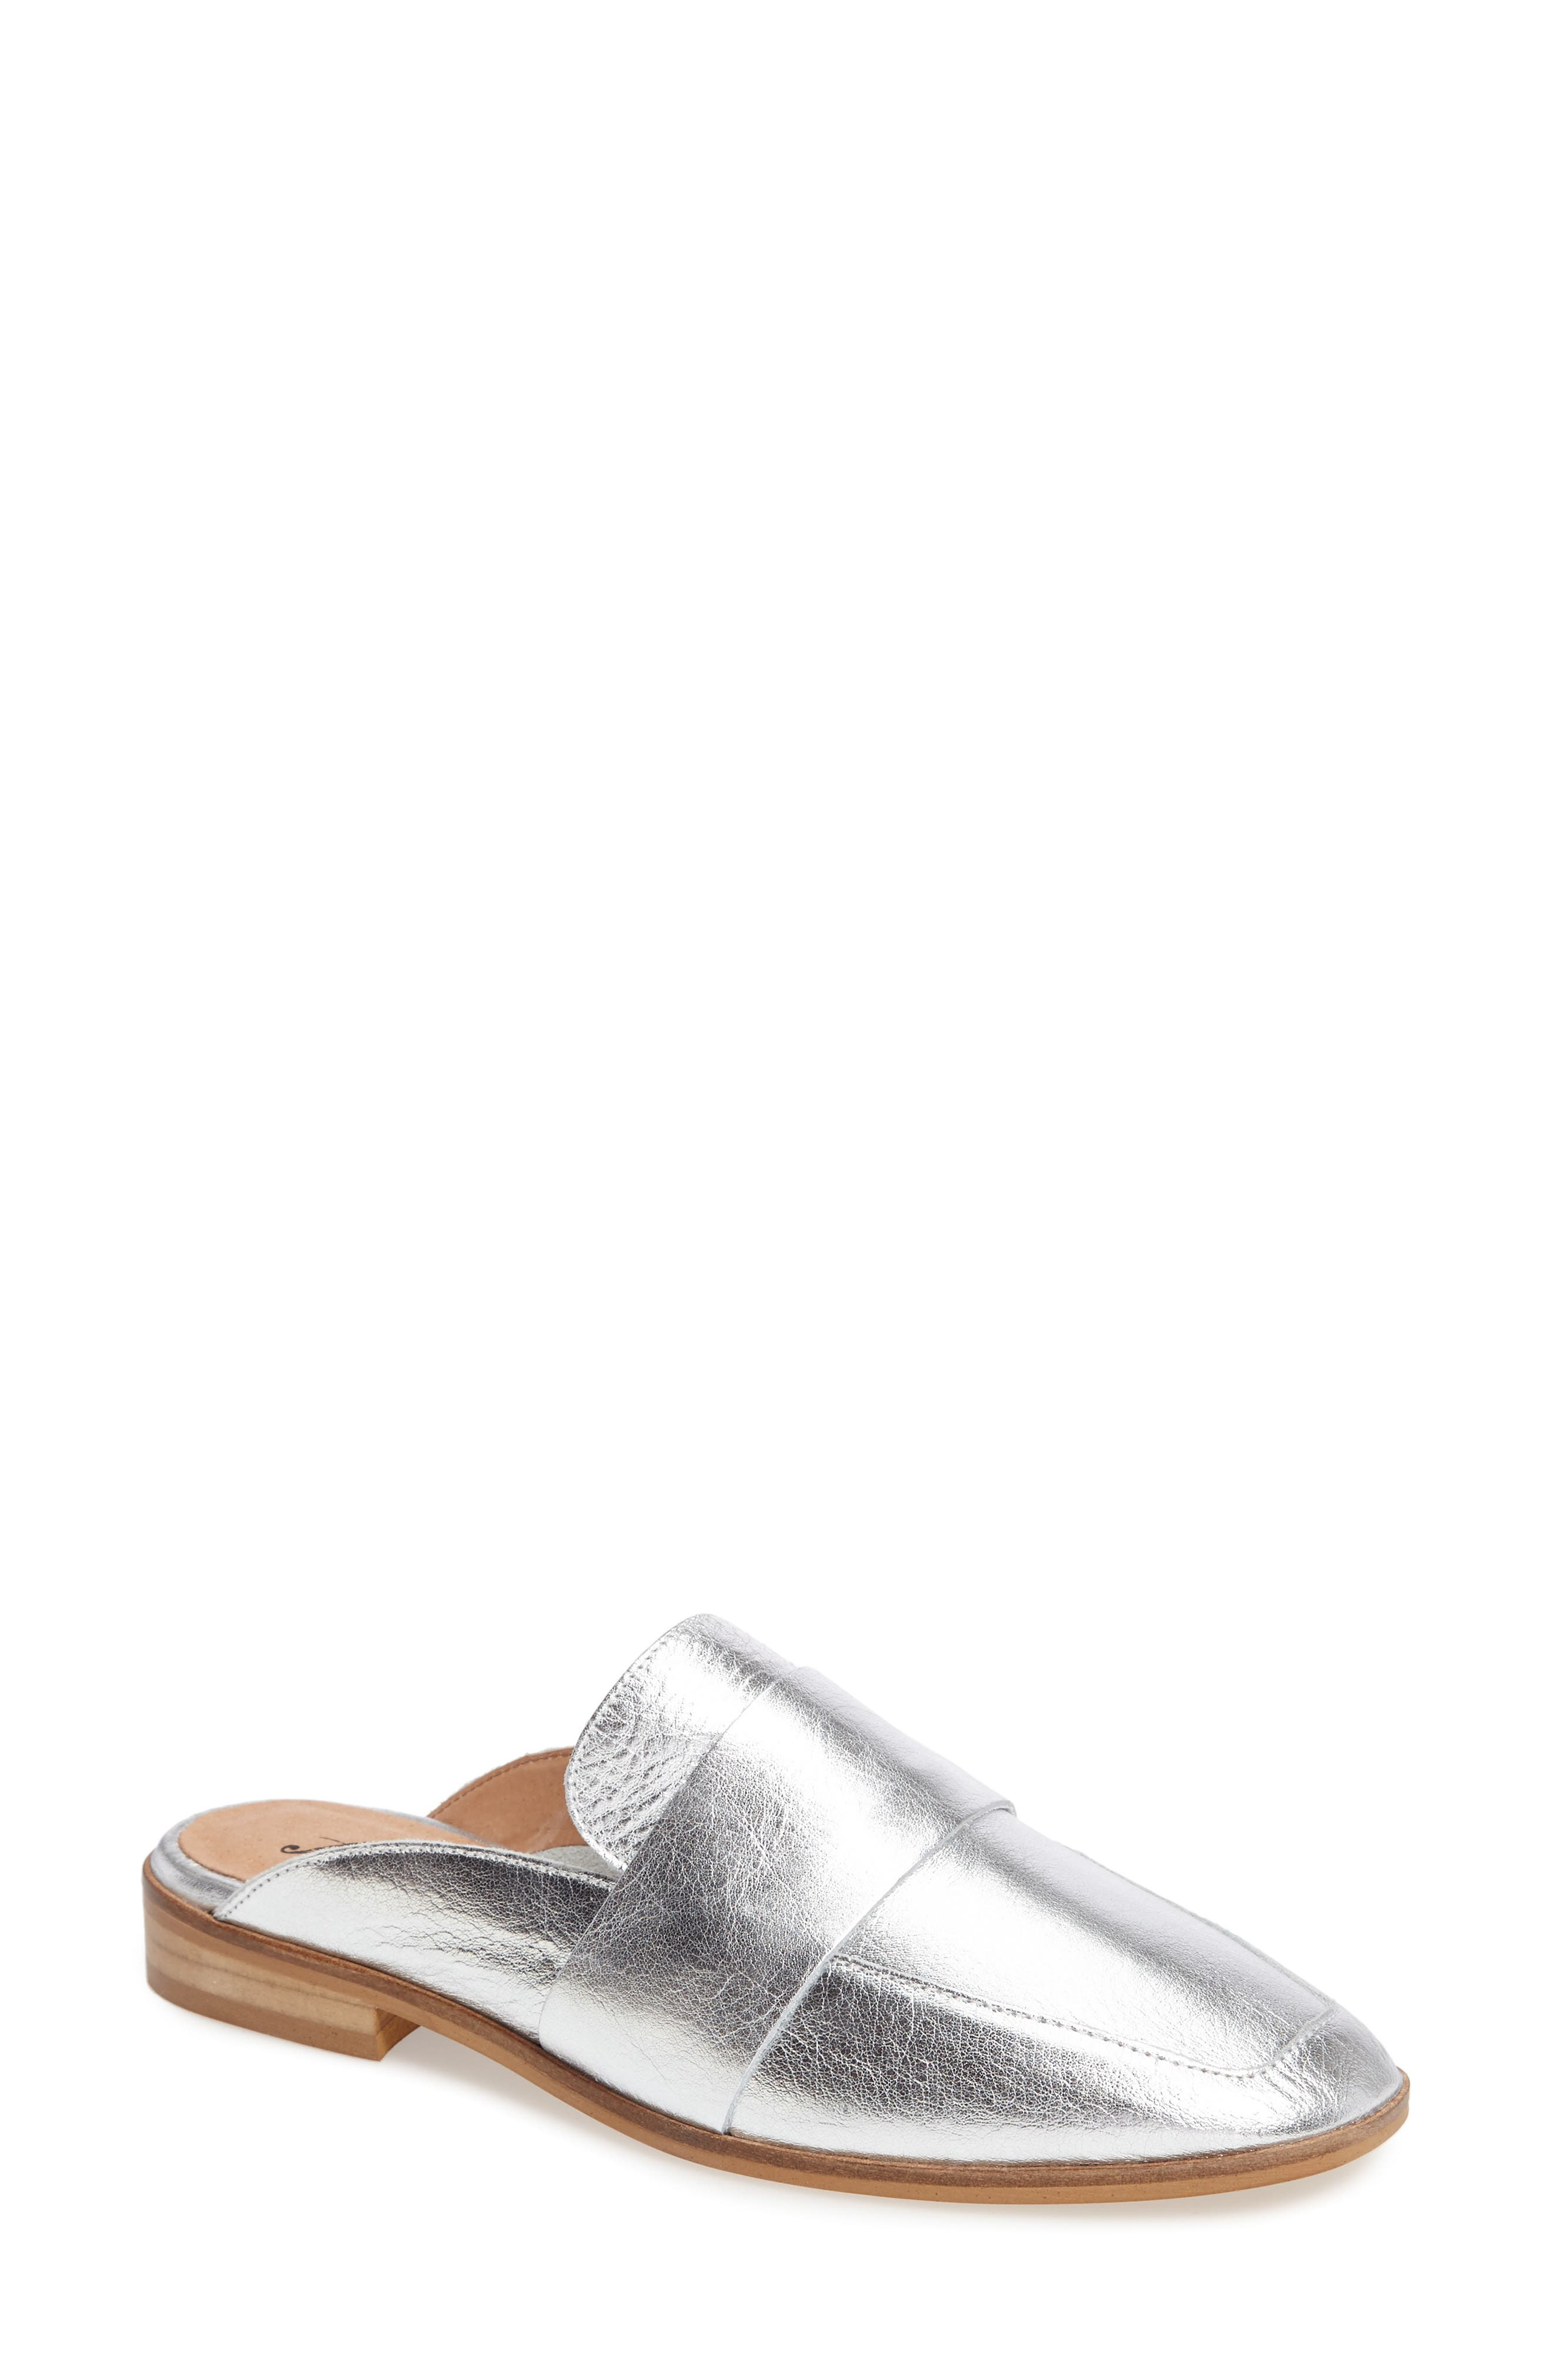 Main Image - Free People At Ease Loafer Mule (Women)